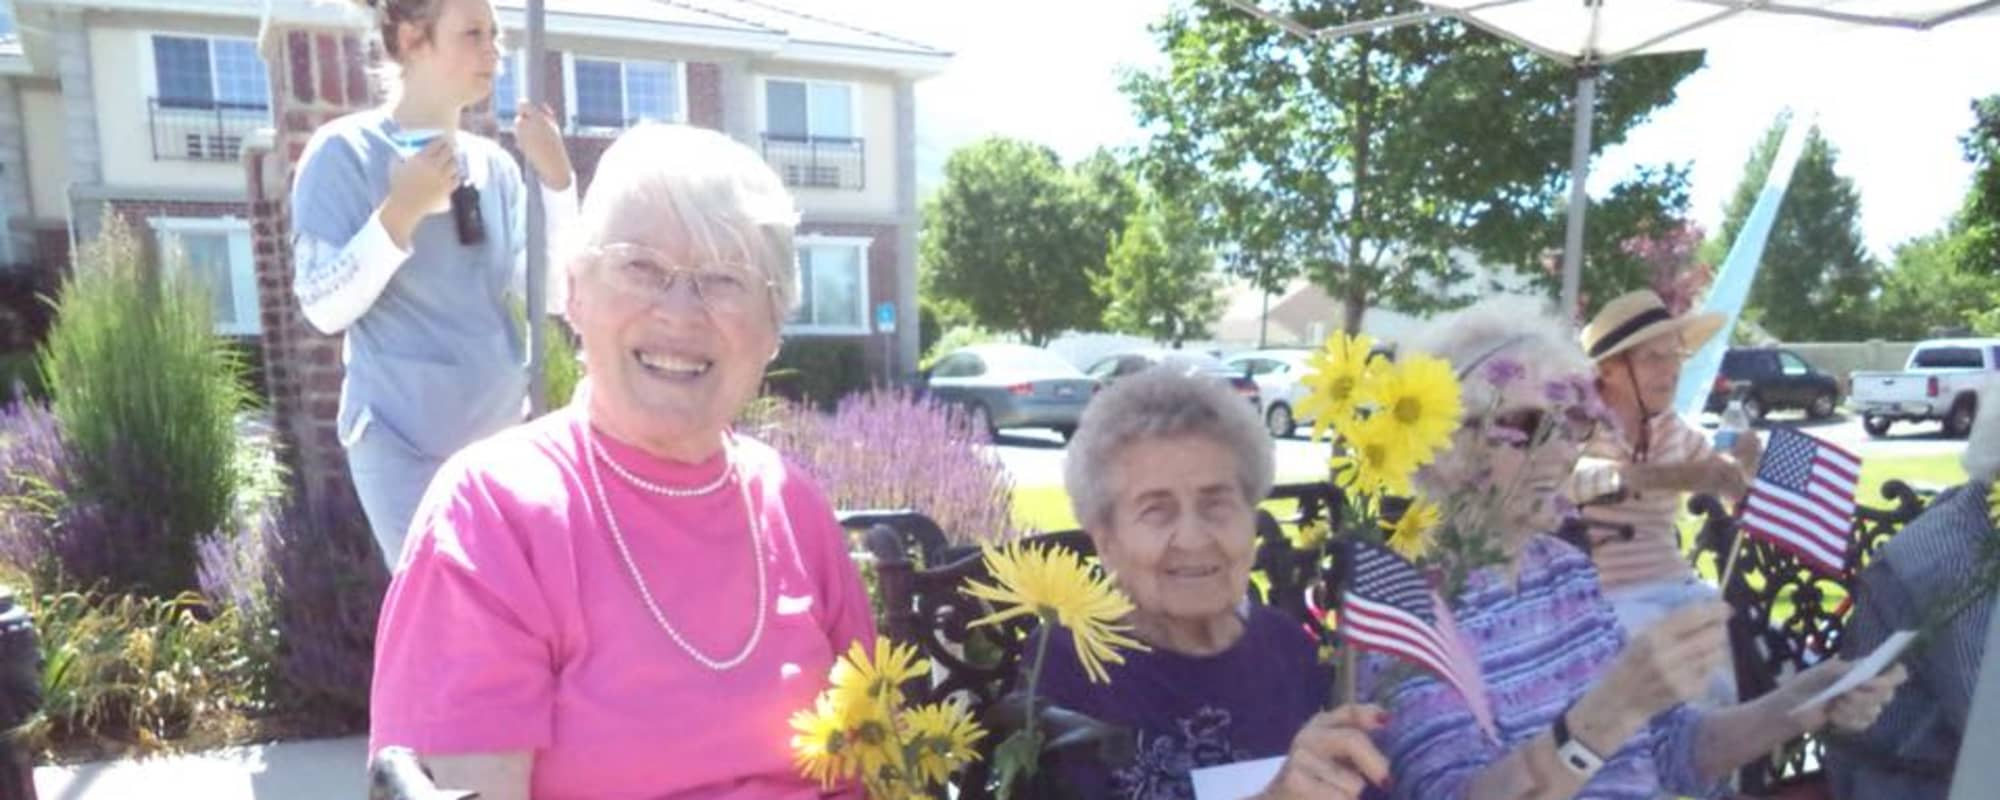 Happy seniors with flowers at The Charleston at Cedar Hills in Cedar Hills, Utah